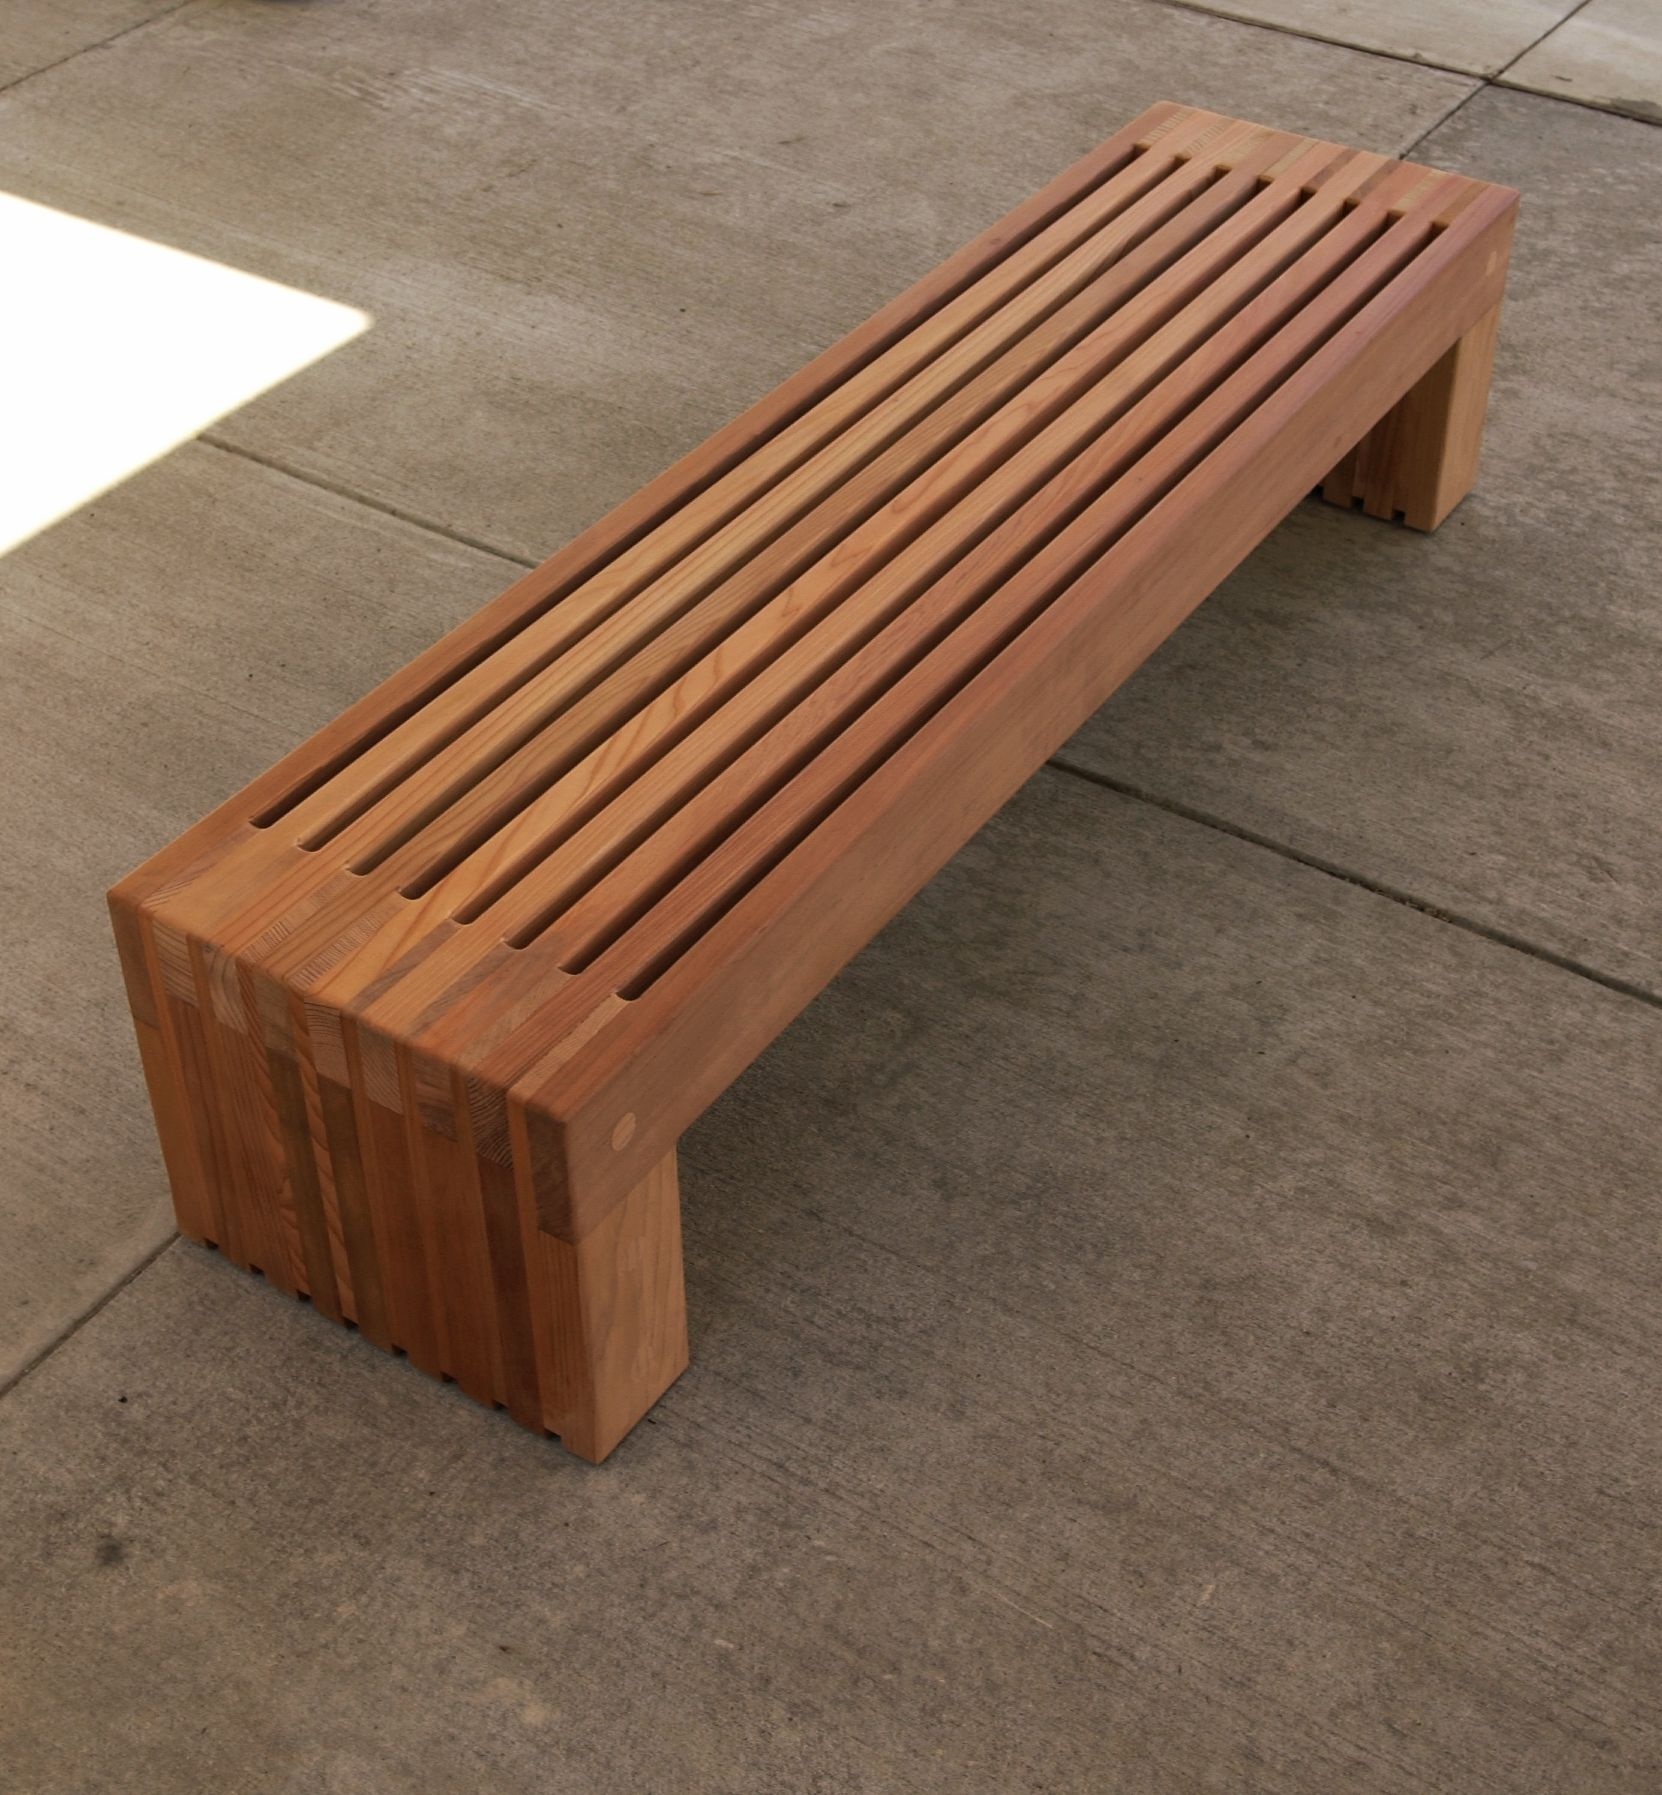 Summer is coming so you need a bench like this